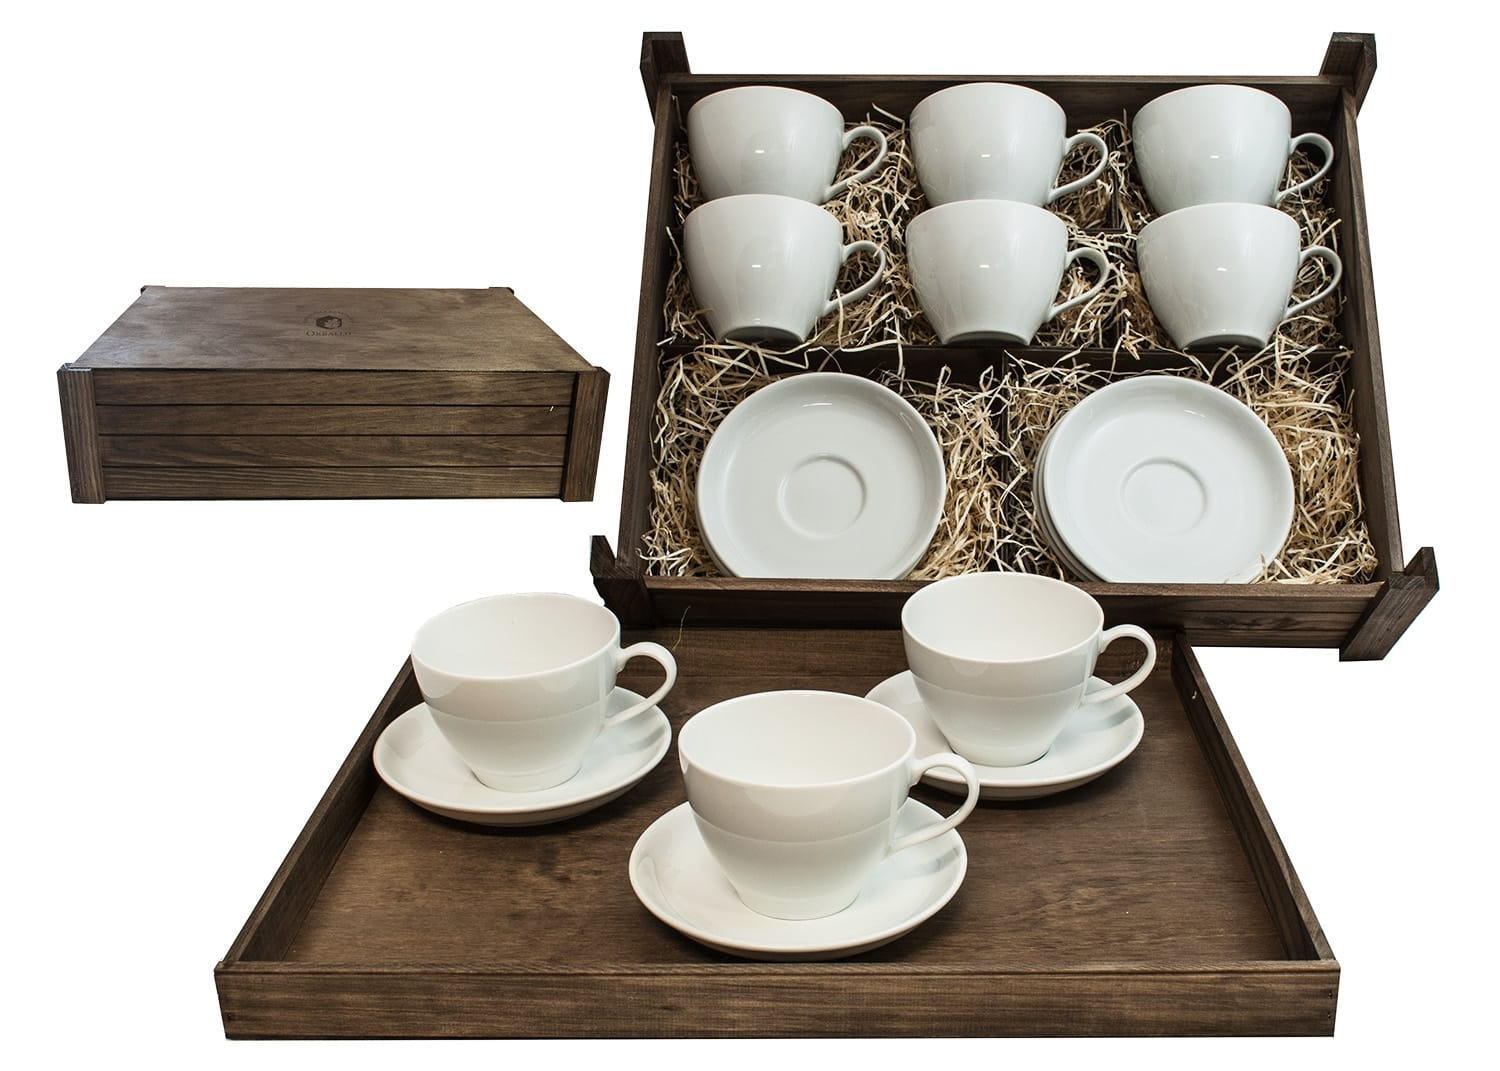 Six-mug breakfast set in wooden box. Volare Desing, White Collection